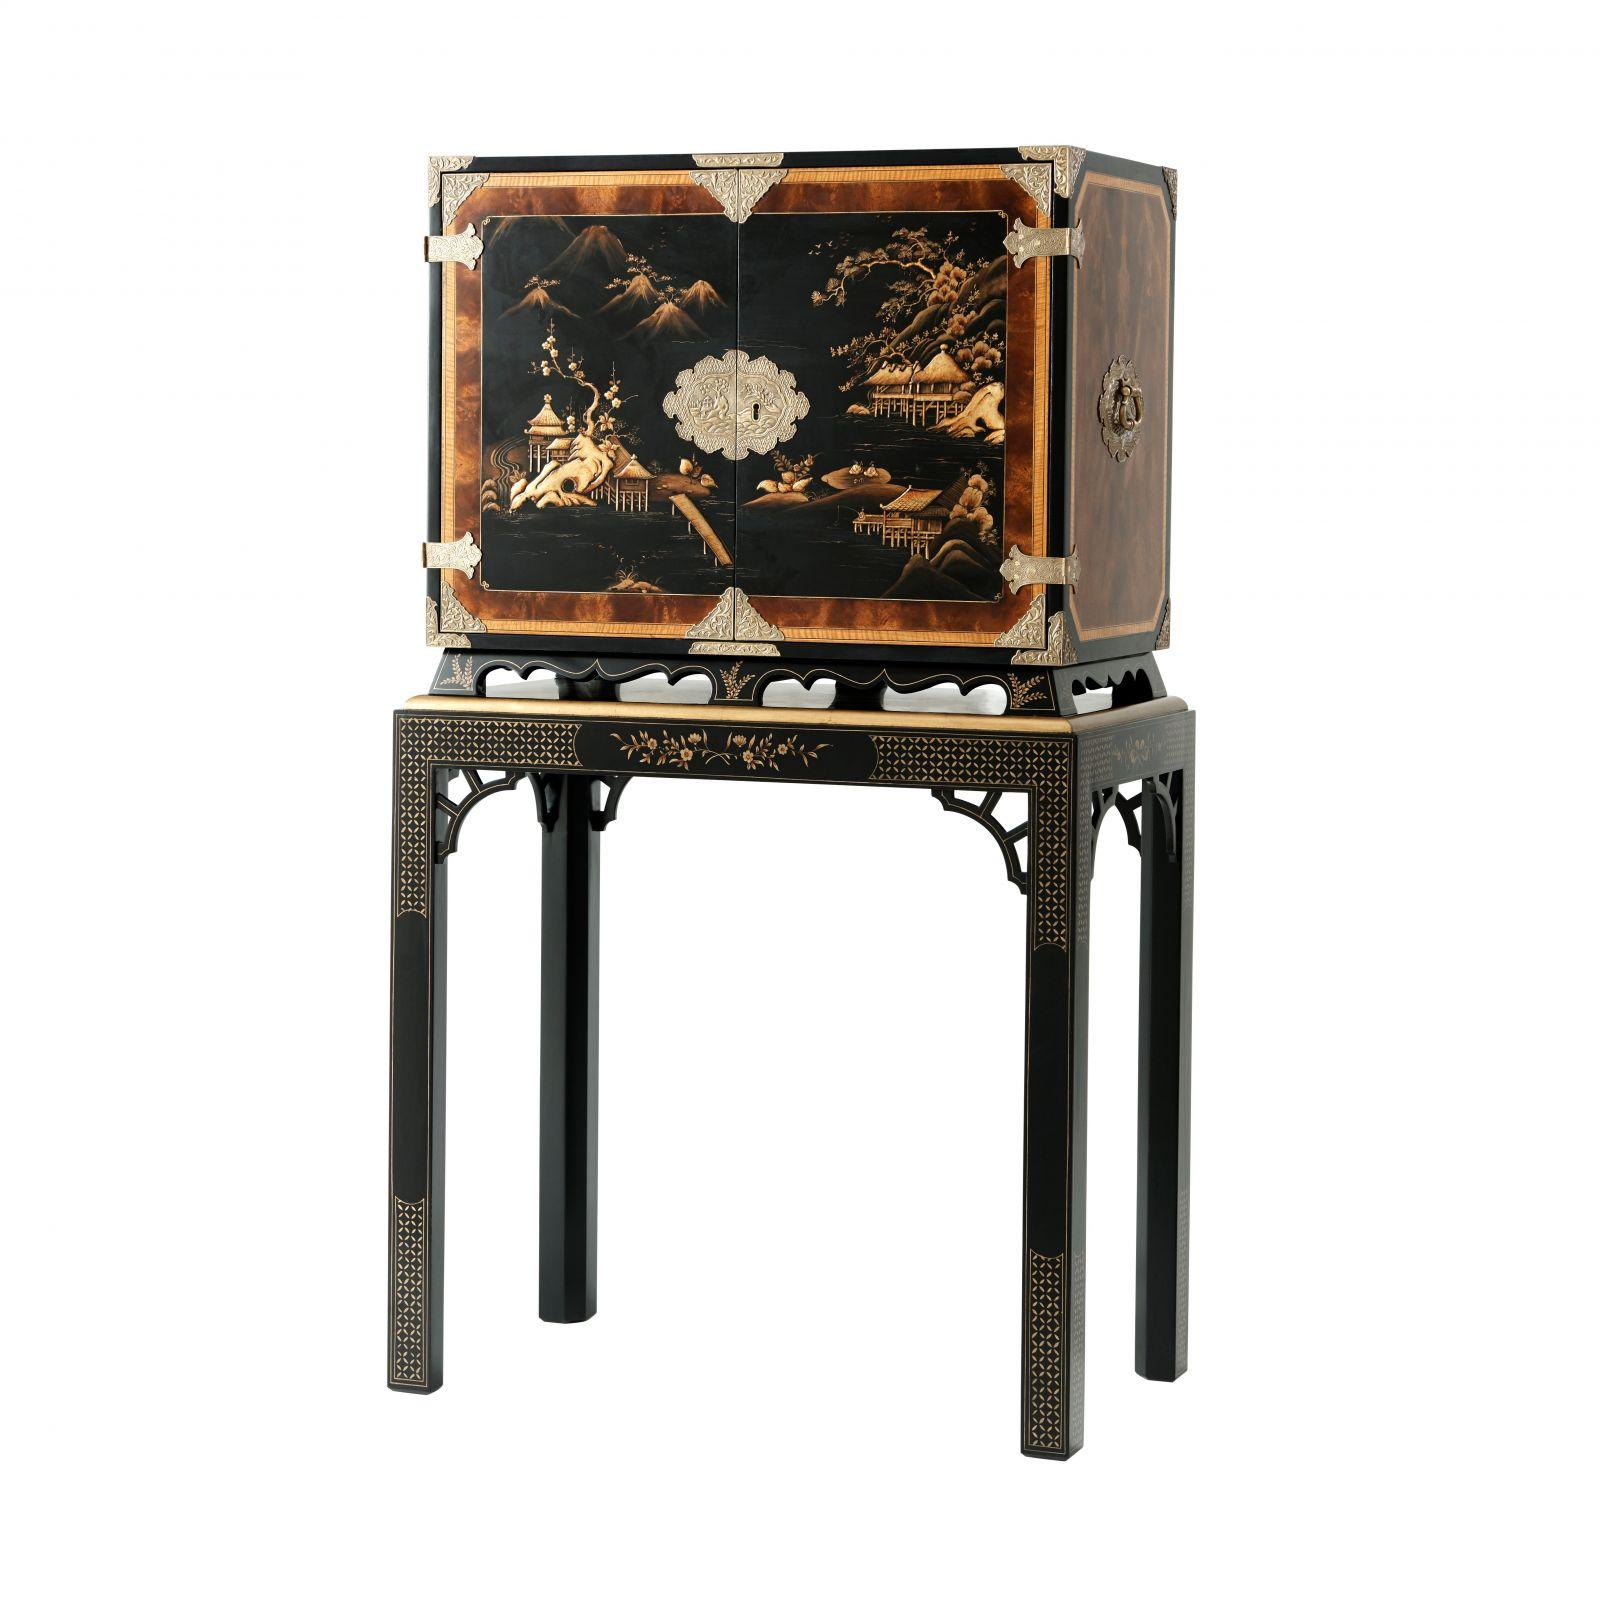 Black Lacquered Chinoiserie Bar or Drinks Cabinet with Hand-Painted Chinese Decoration